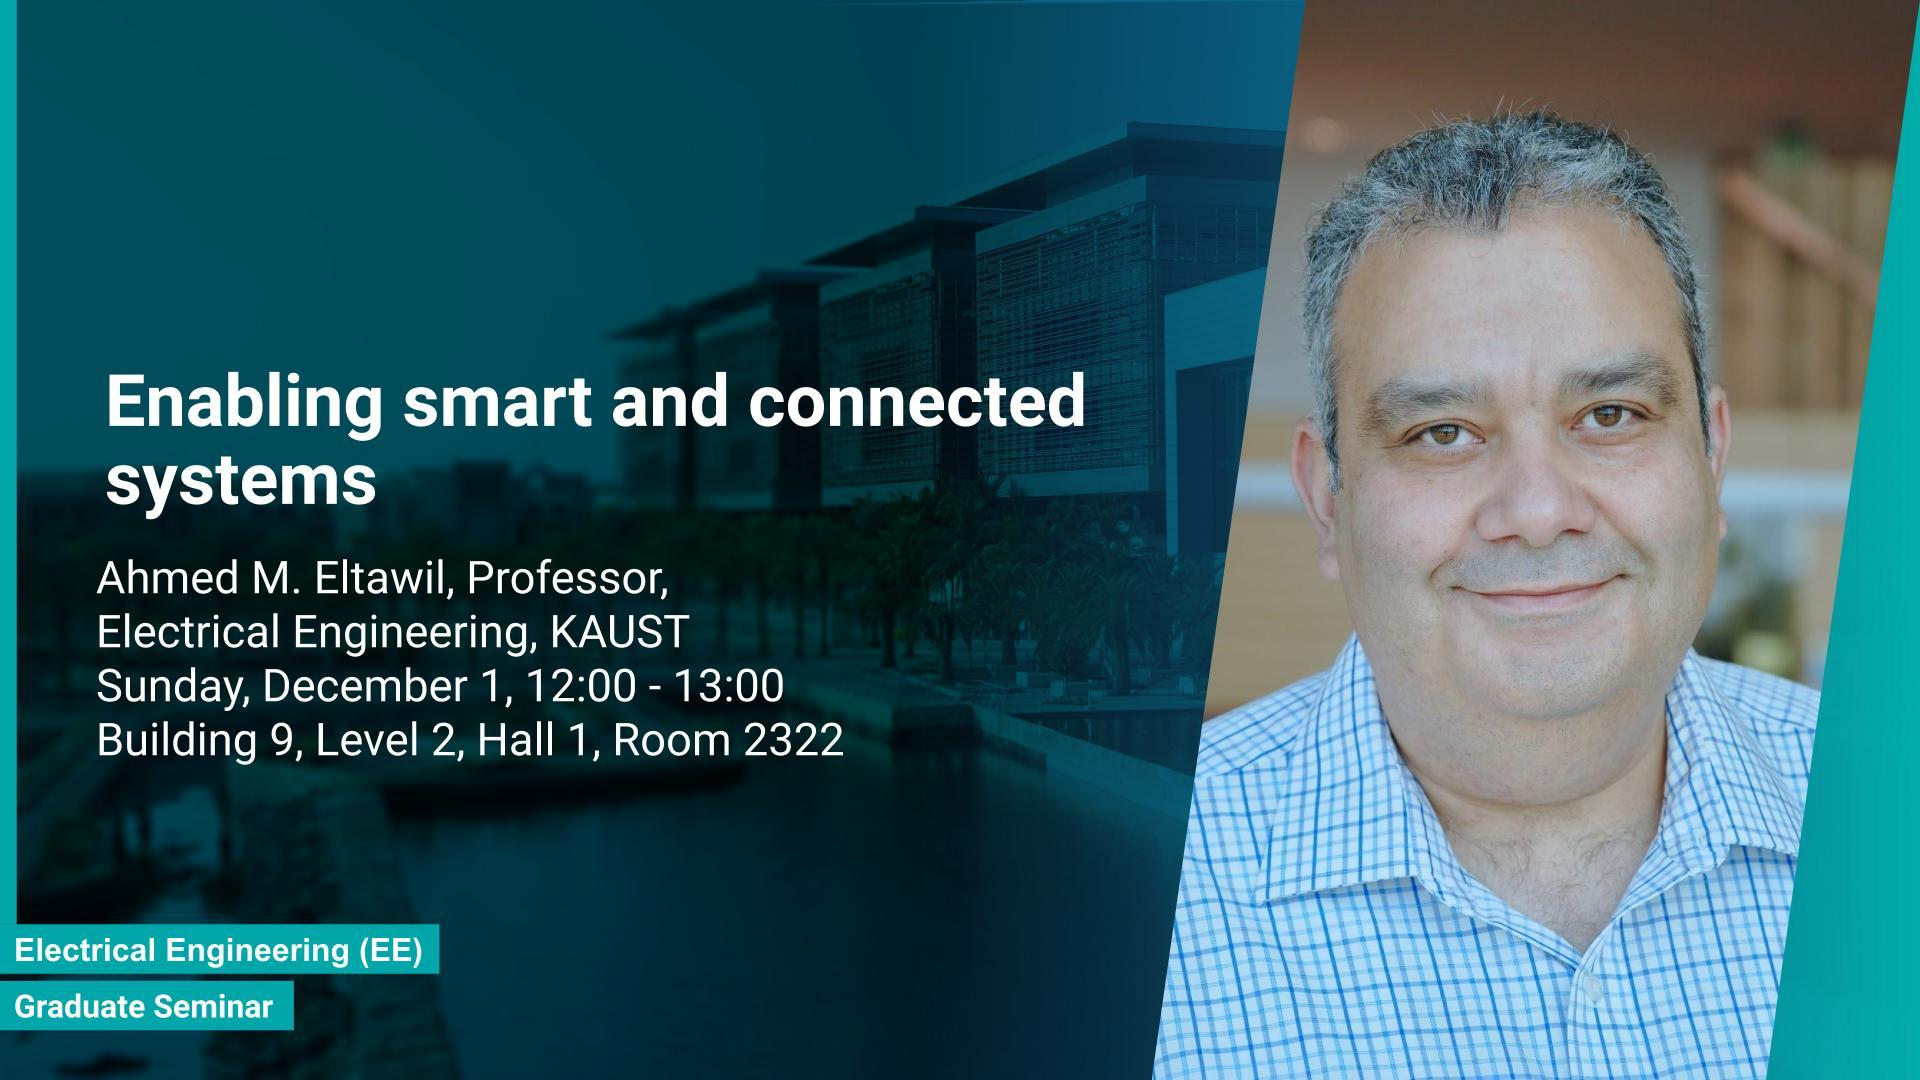 KAUST CEMSE EE Graduate Seminar Ahmed M. Eltawil enabling smart and connected systems